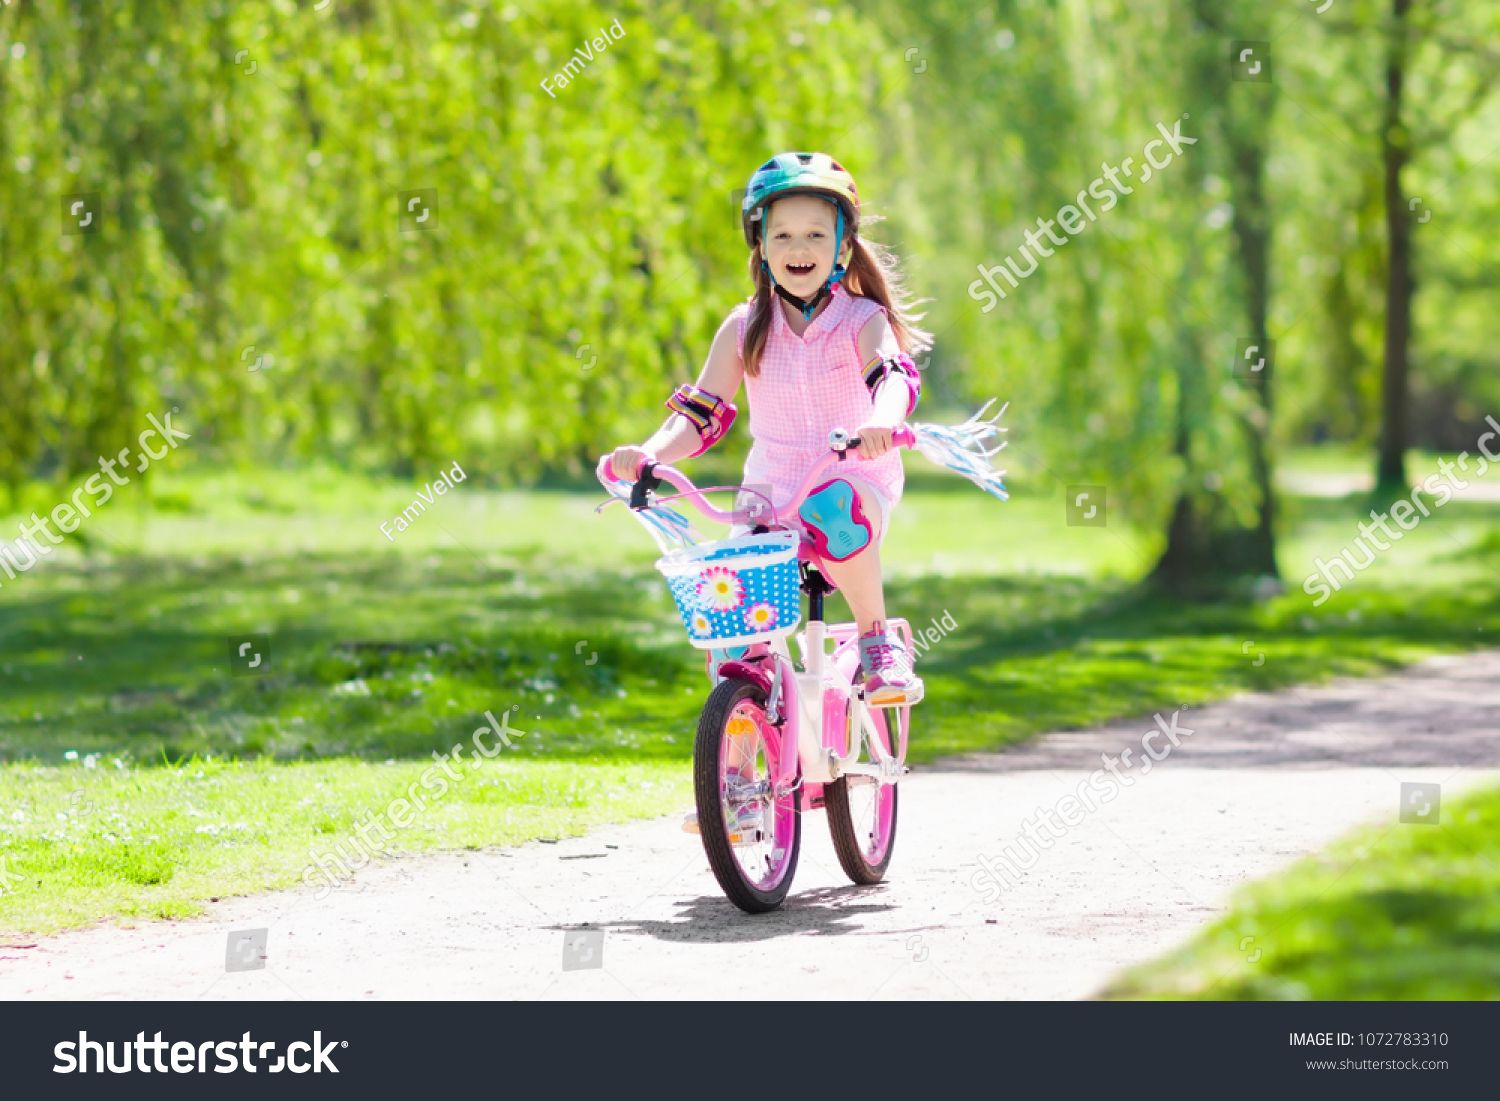 Child Riding A Bike In Summer Park Little Girl Learning To Ride A